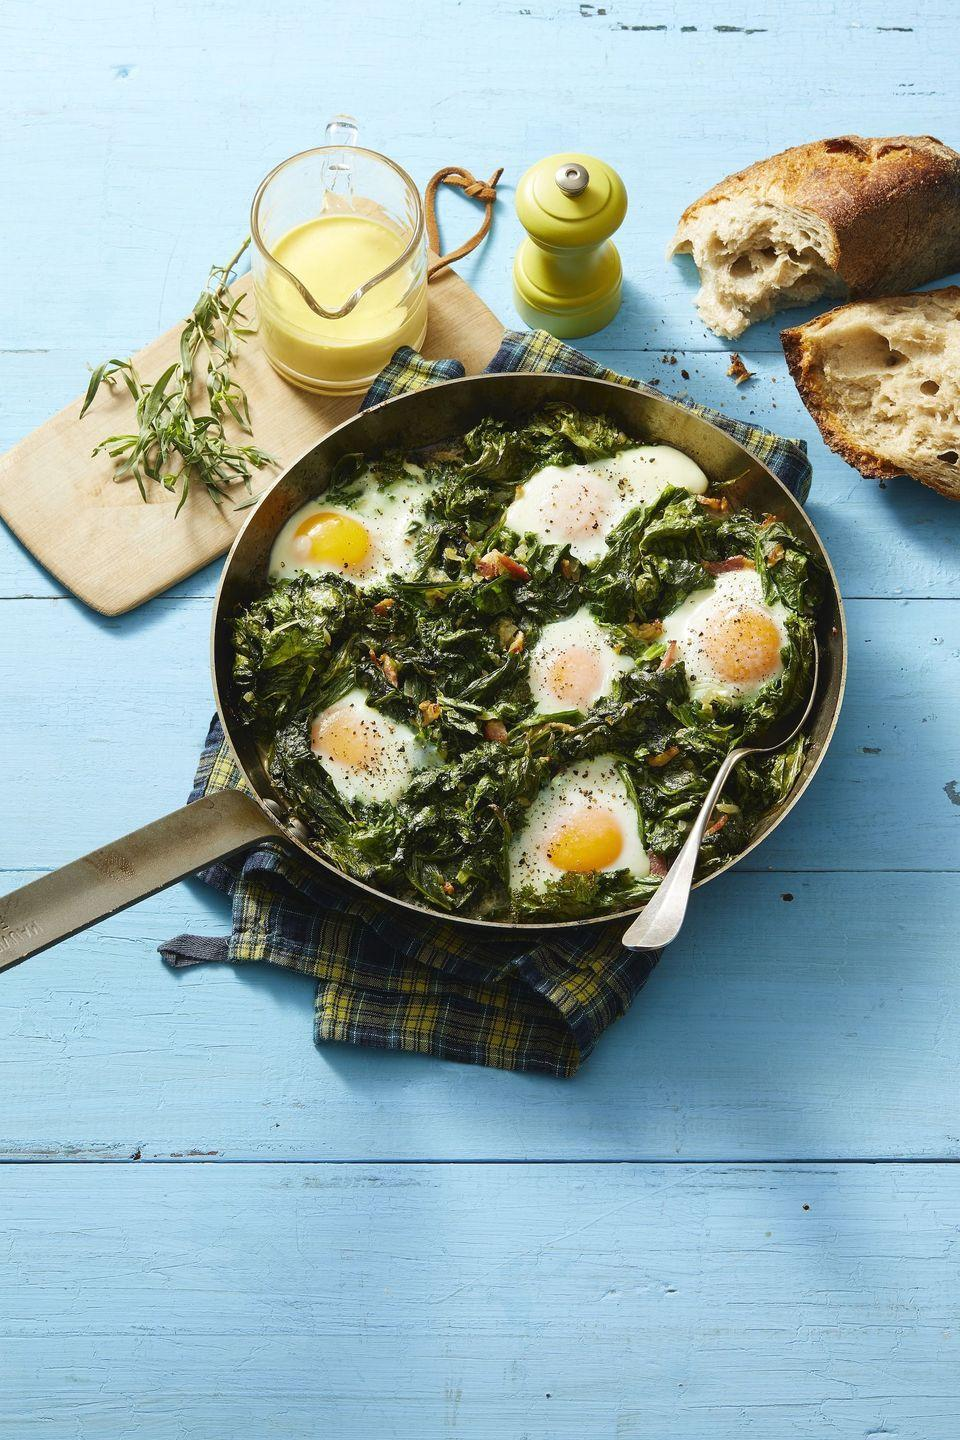 """<p>Part Eggs Benedict, part Shakshuka this is the perfect vegetarian dish to serve for breakfast, brunch, or dinner. </p><p><em><a href=""""https://www.womansday.com/food-recipes/a32320198/skillet-eggs-with-mustard-greens-and-hollandaise-recipe/"""" rel=""""nofollow noopener"""" target=""""_blank"""" data-ylk=""""slk:Get the Skillet Eggs With Mustard Greens and Hollandaise recipe."""" class=""""link rapid-noclick-resp"""">Get the Skillet Eggs With Mustard Greens and Hollandaise recipe. </a></em></p>"""